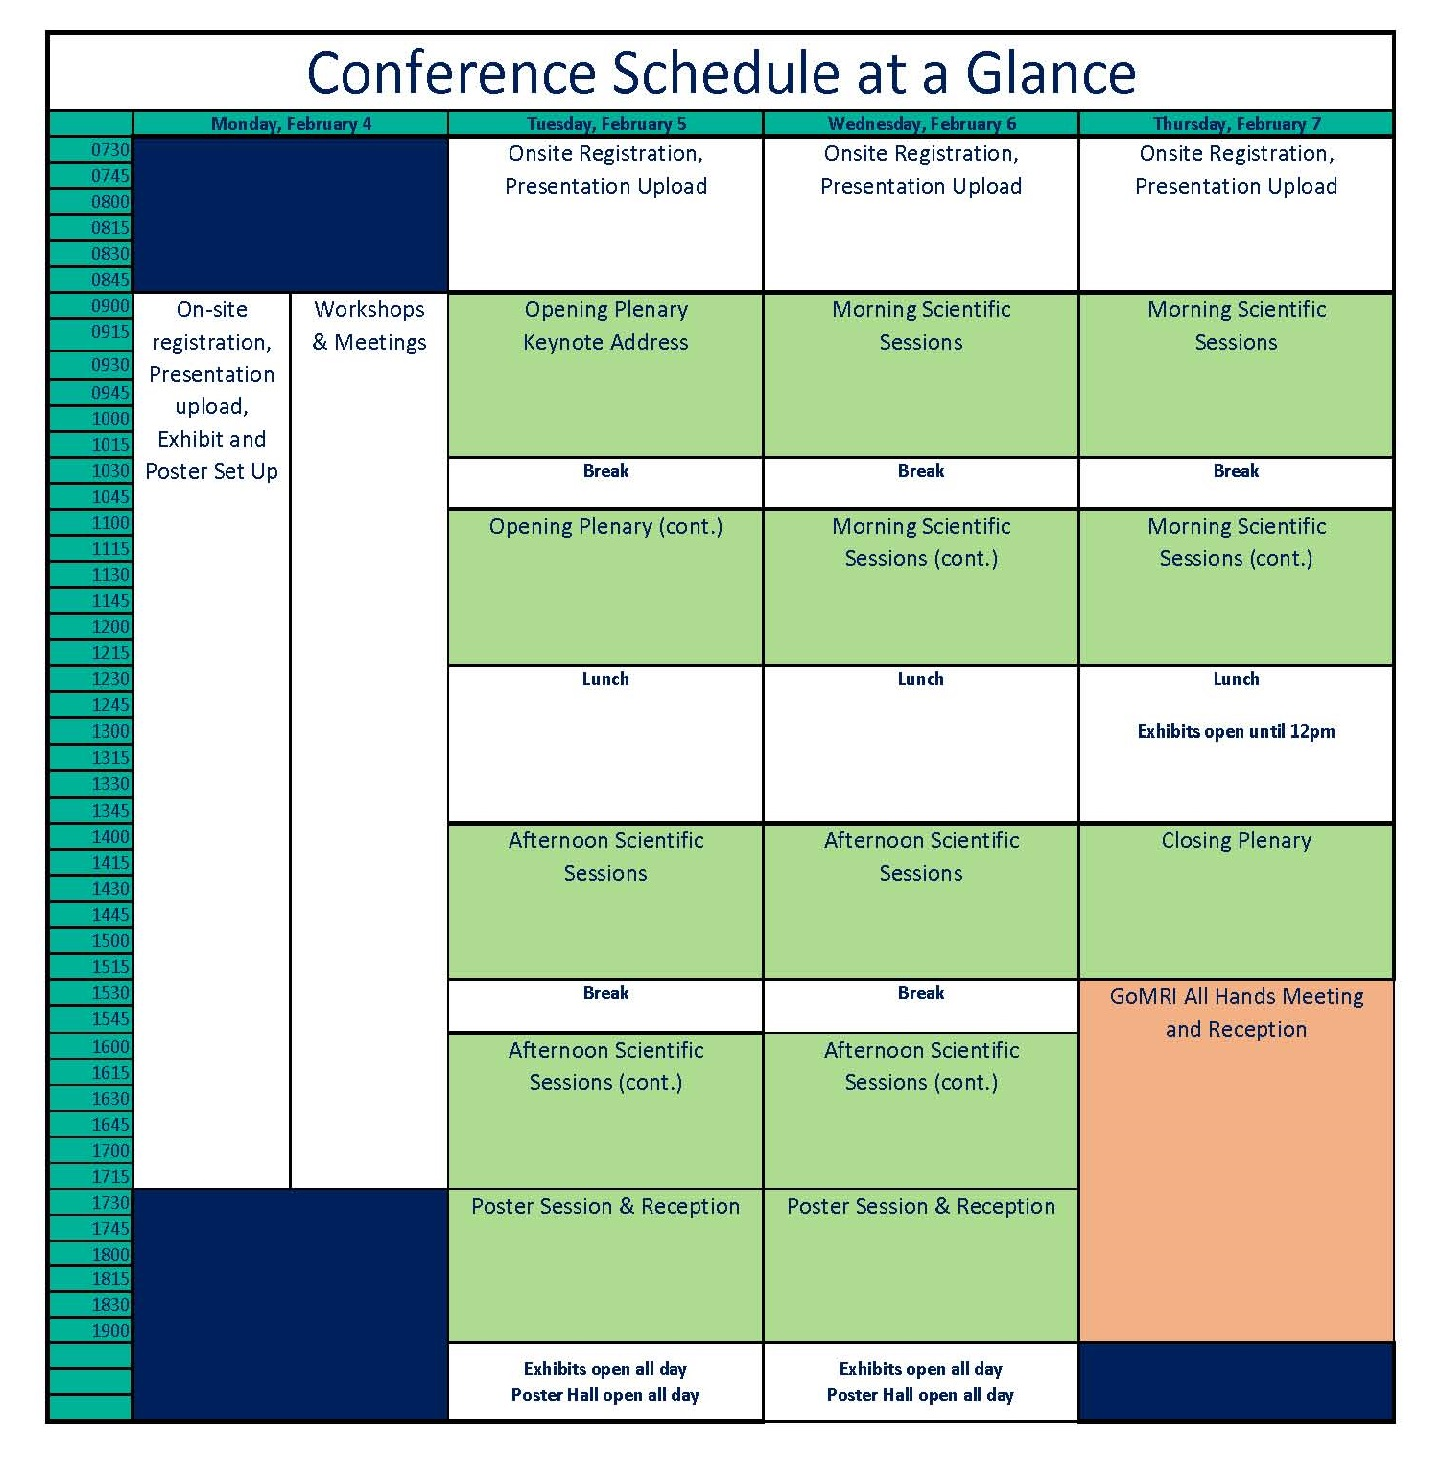 conference schedule sept 20 w gomri